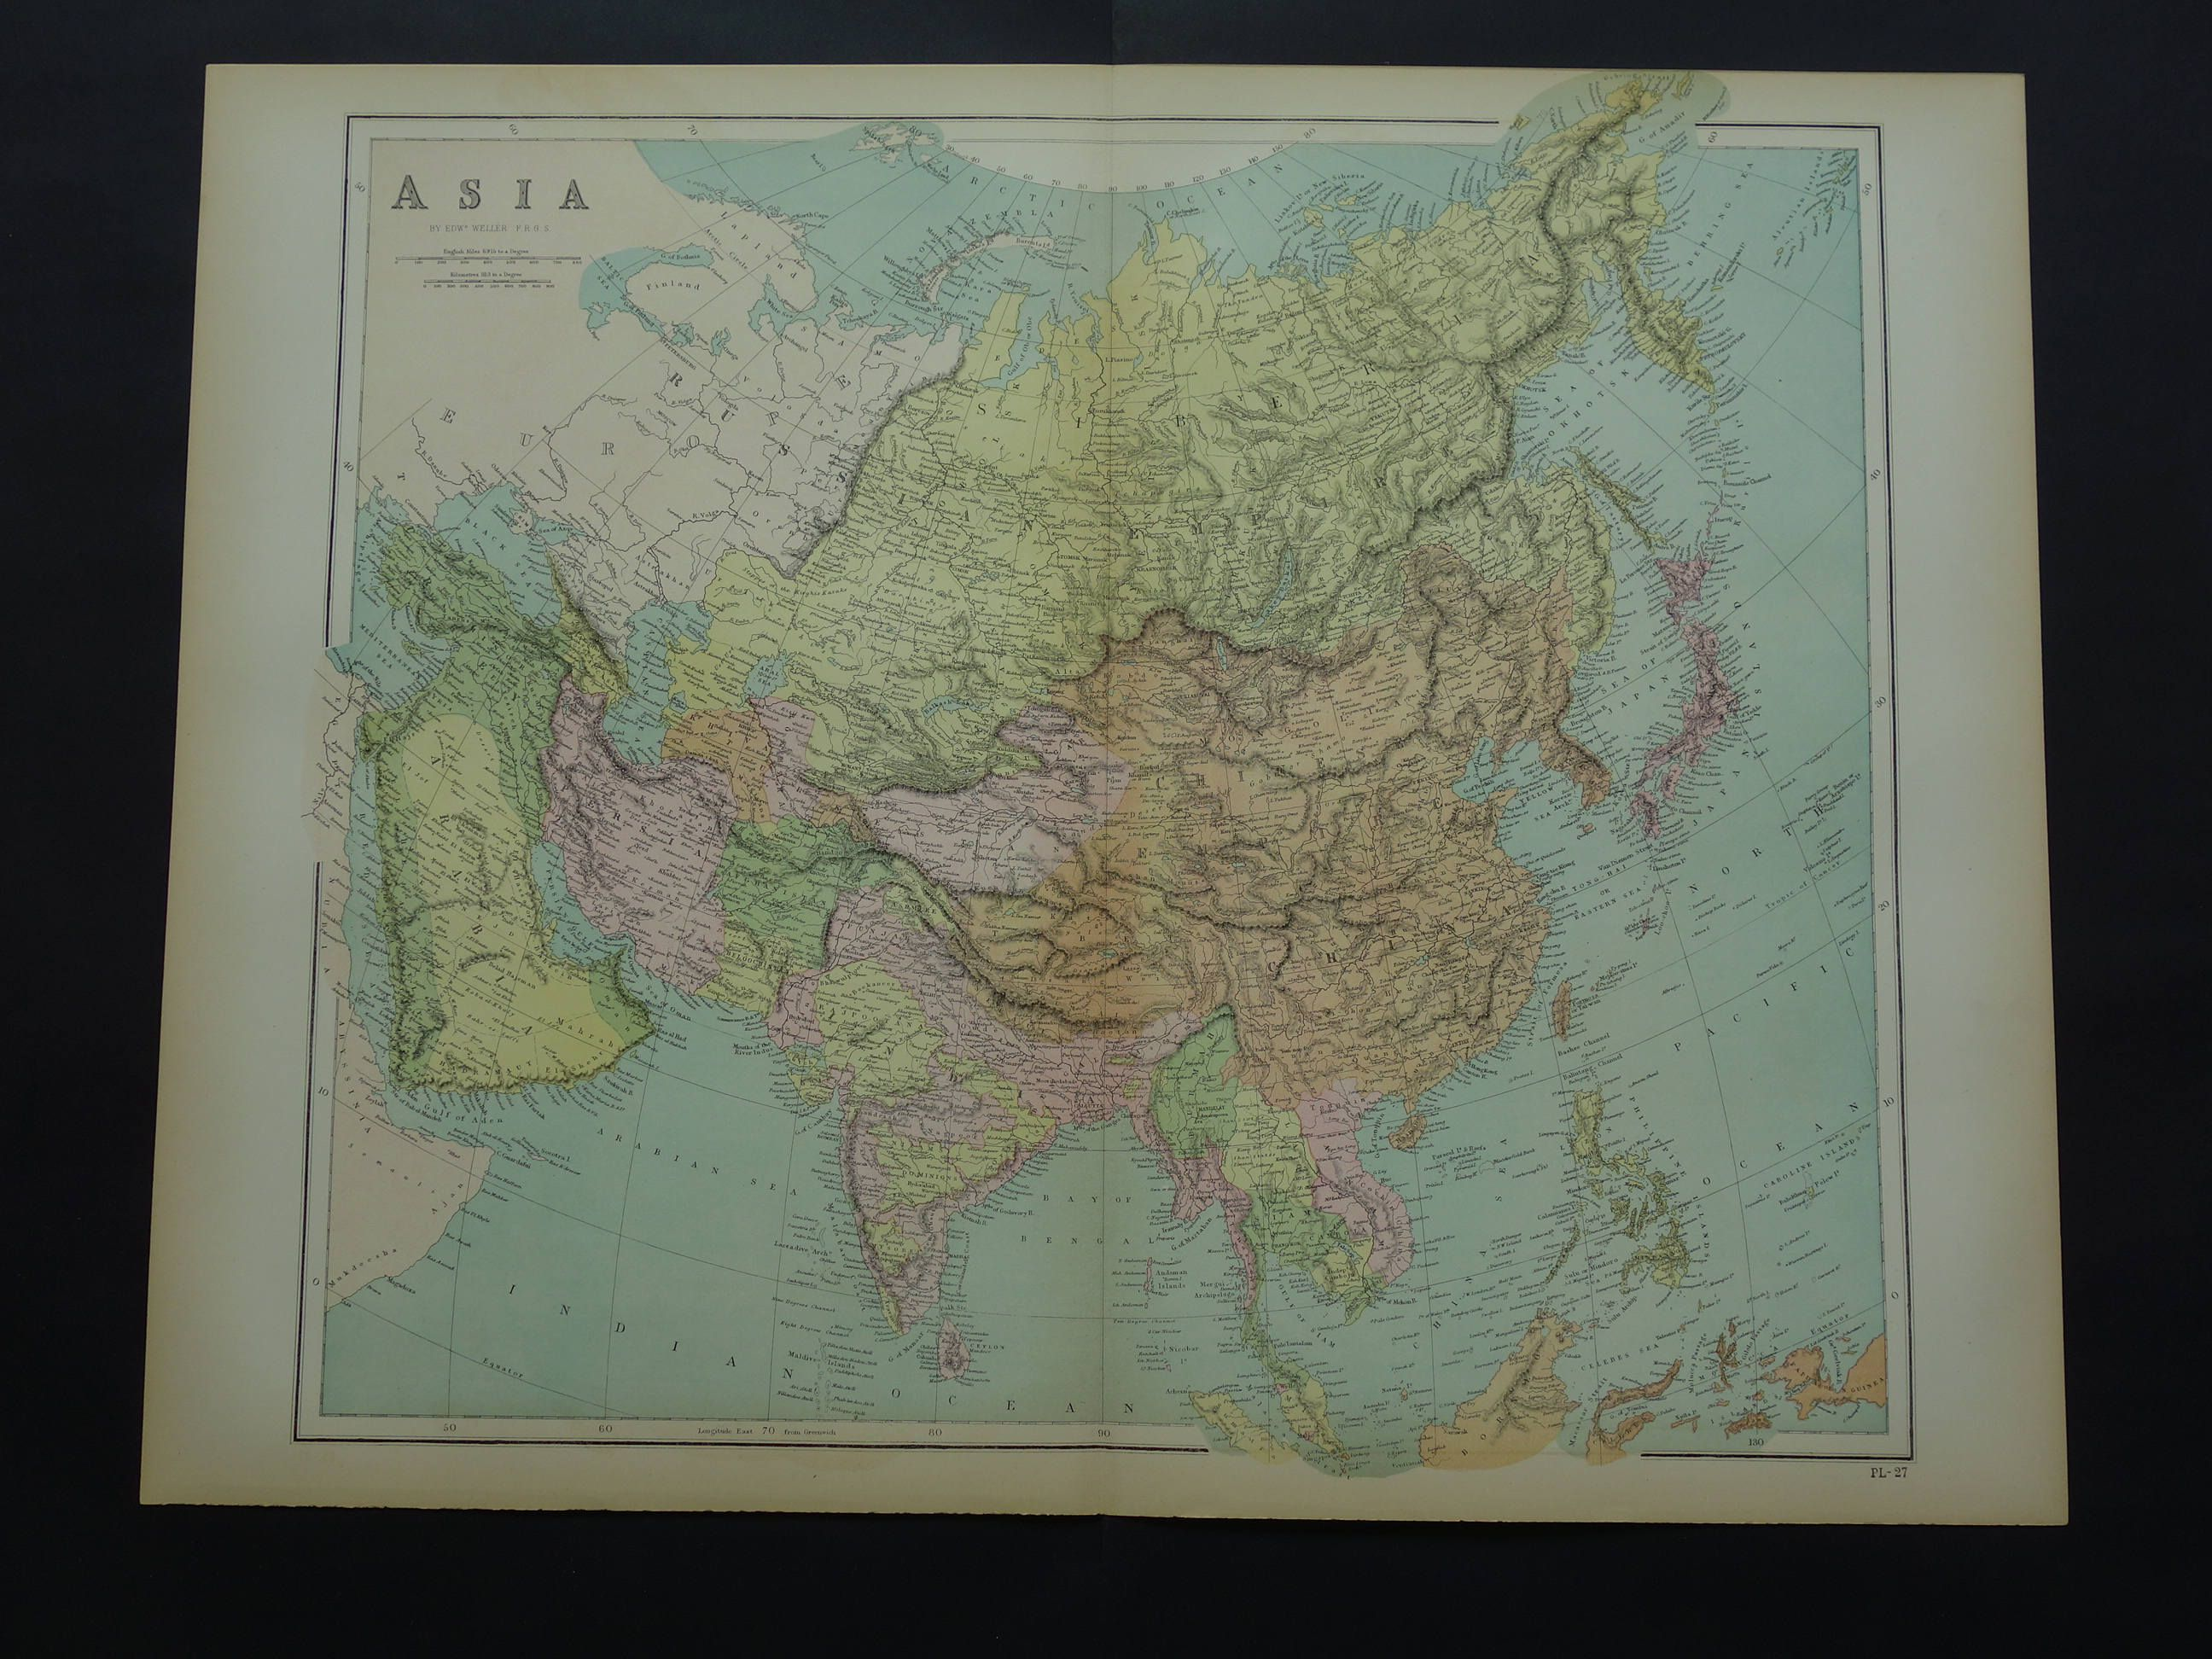 Asia old map of asia in 1875 large original antique english poster asia old map of asia in 1875 large original antique english poster about continent india japan gumiabroncs Image collections